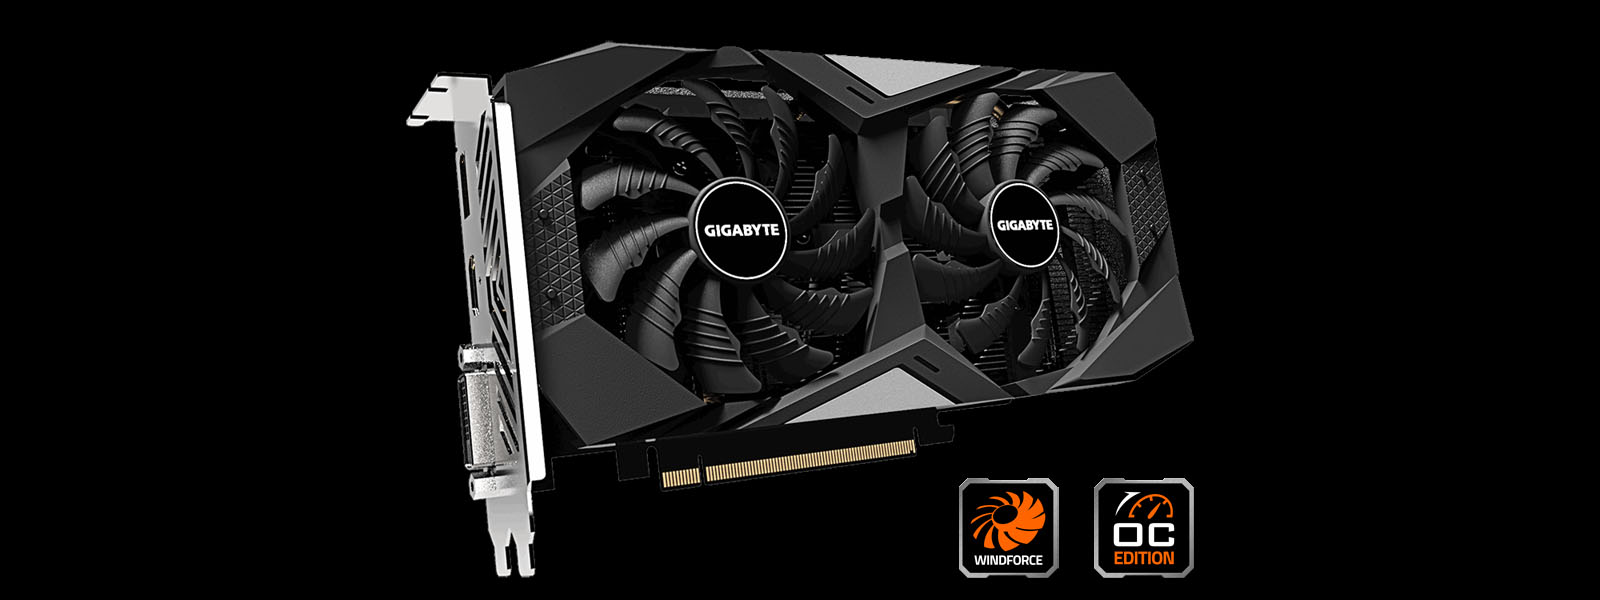 GIGABYTE GeForce GTX 1650 SUPER WINDFORCE OC 4G front look with OC Edition and WINDFORCE logos